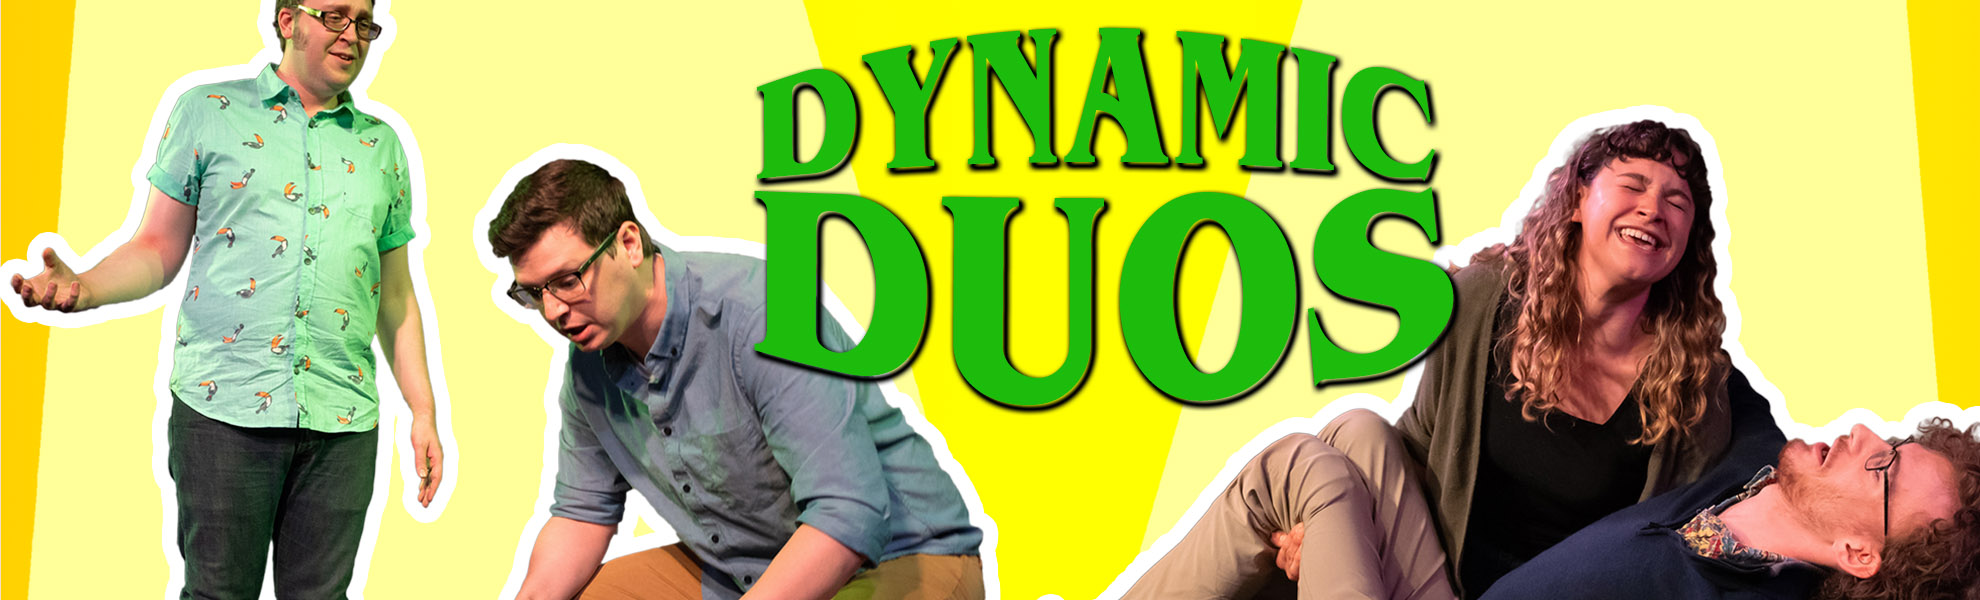 Dynamic Duos | Improv Comedy | The Upfront Theatre